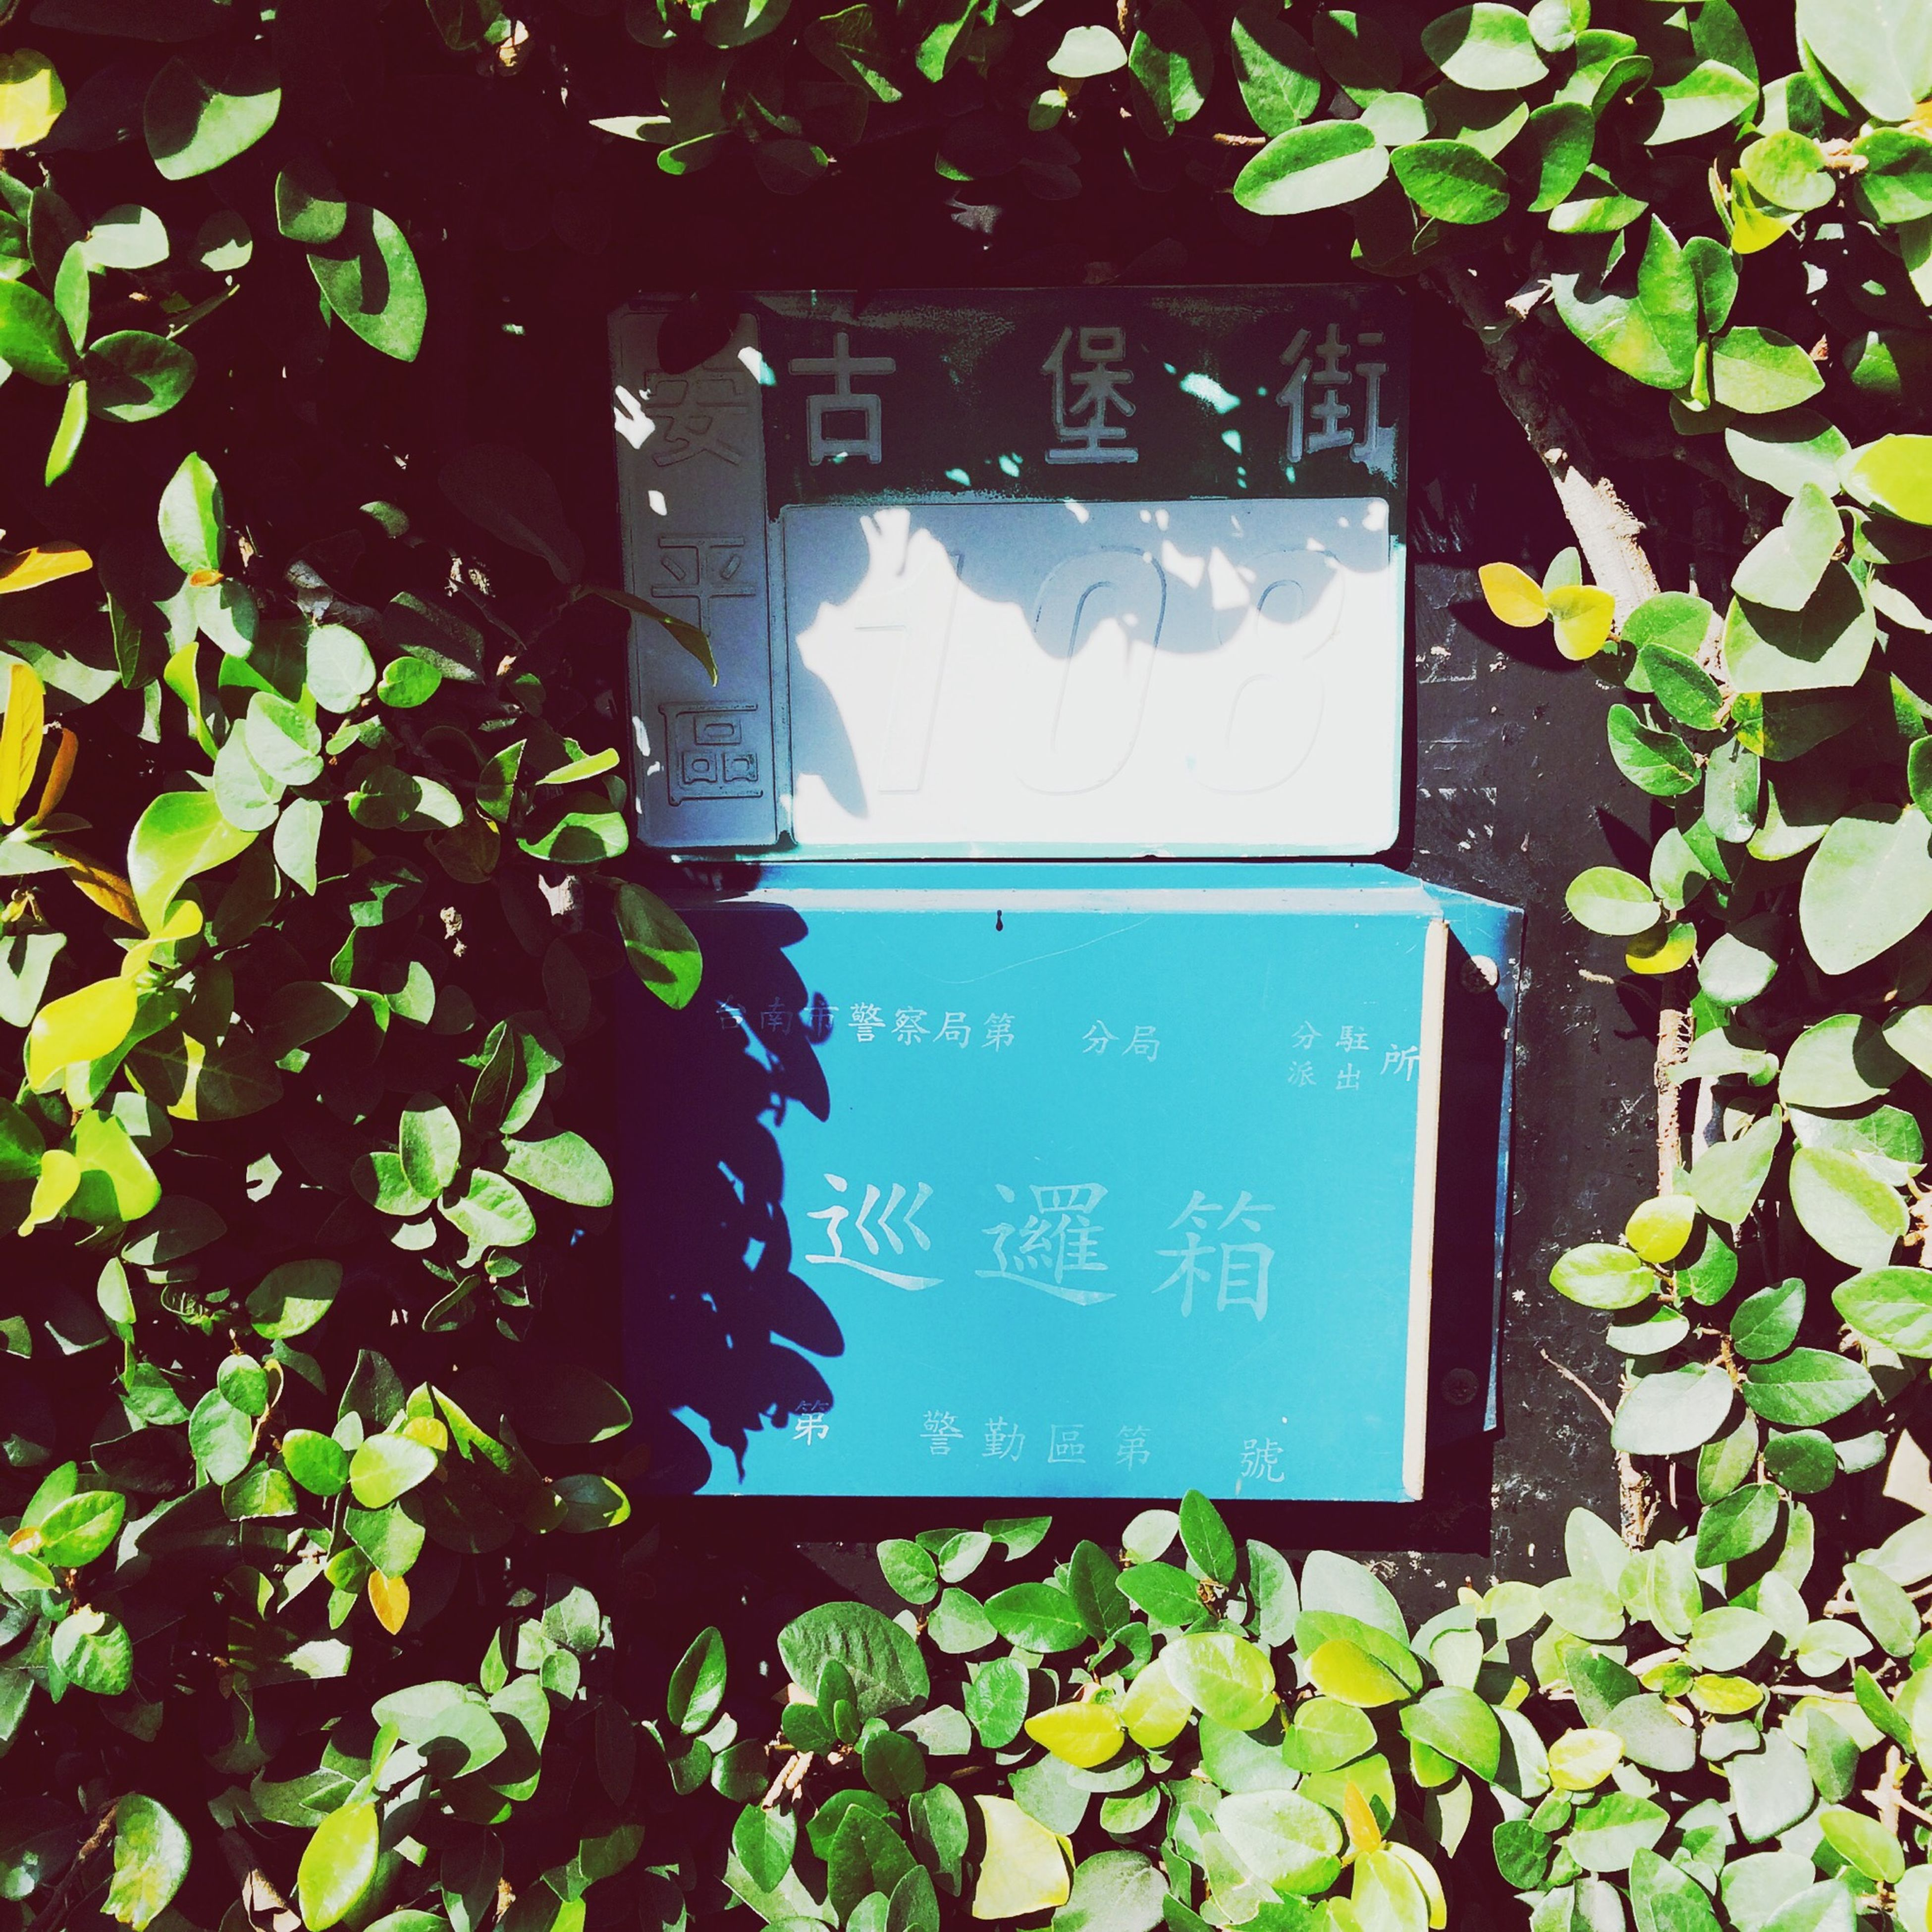 leaf, green color, plant, growth, building exterior, built structure, architecture, text, window, day, house, communication, close-up, green, ivy, no people, blue, low angle view, nature, outdoors